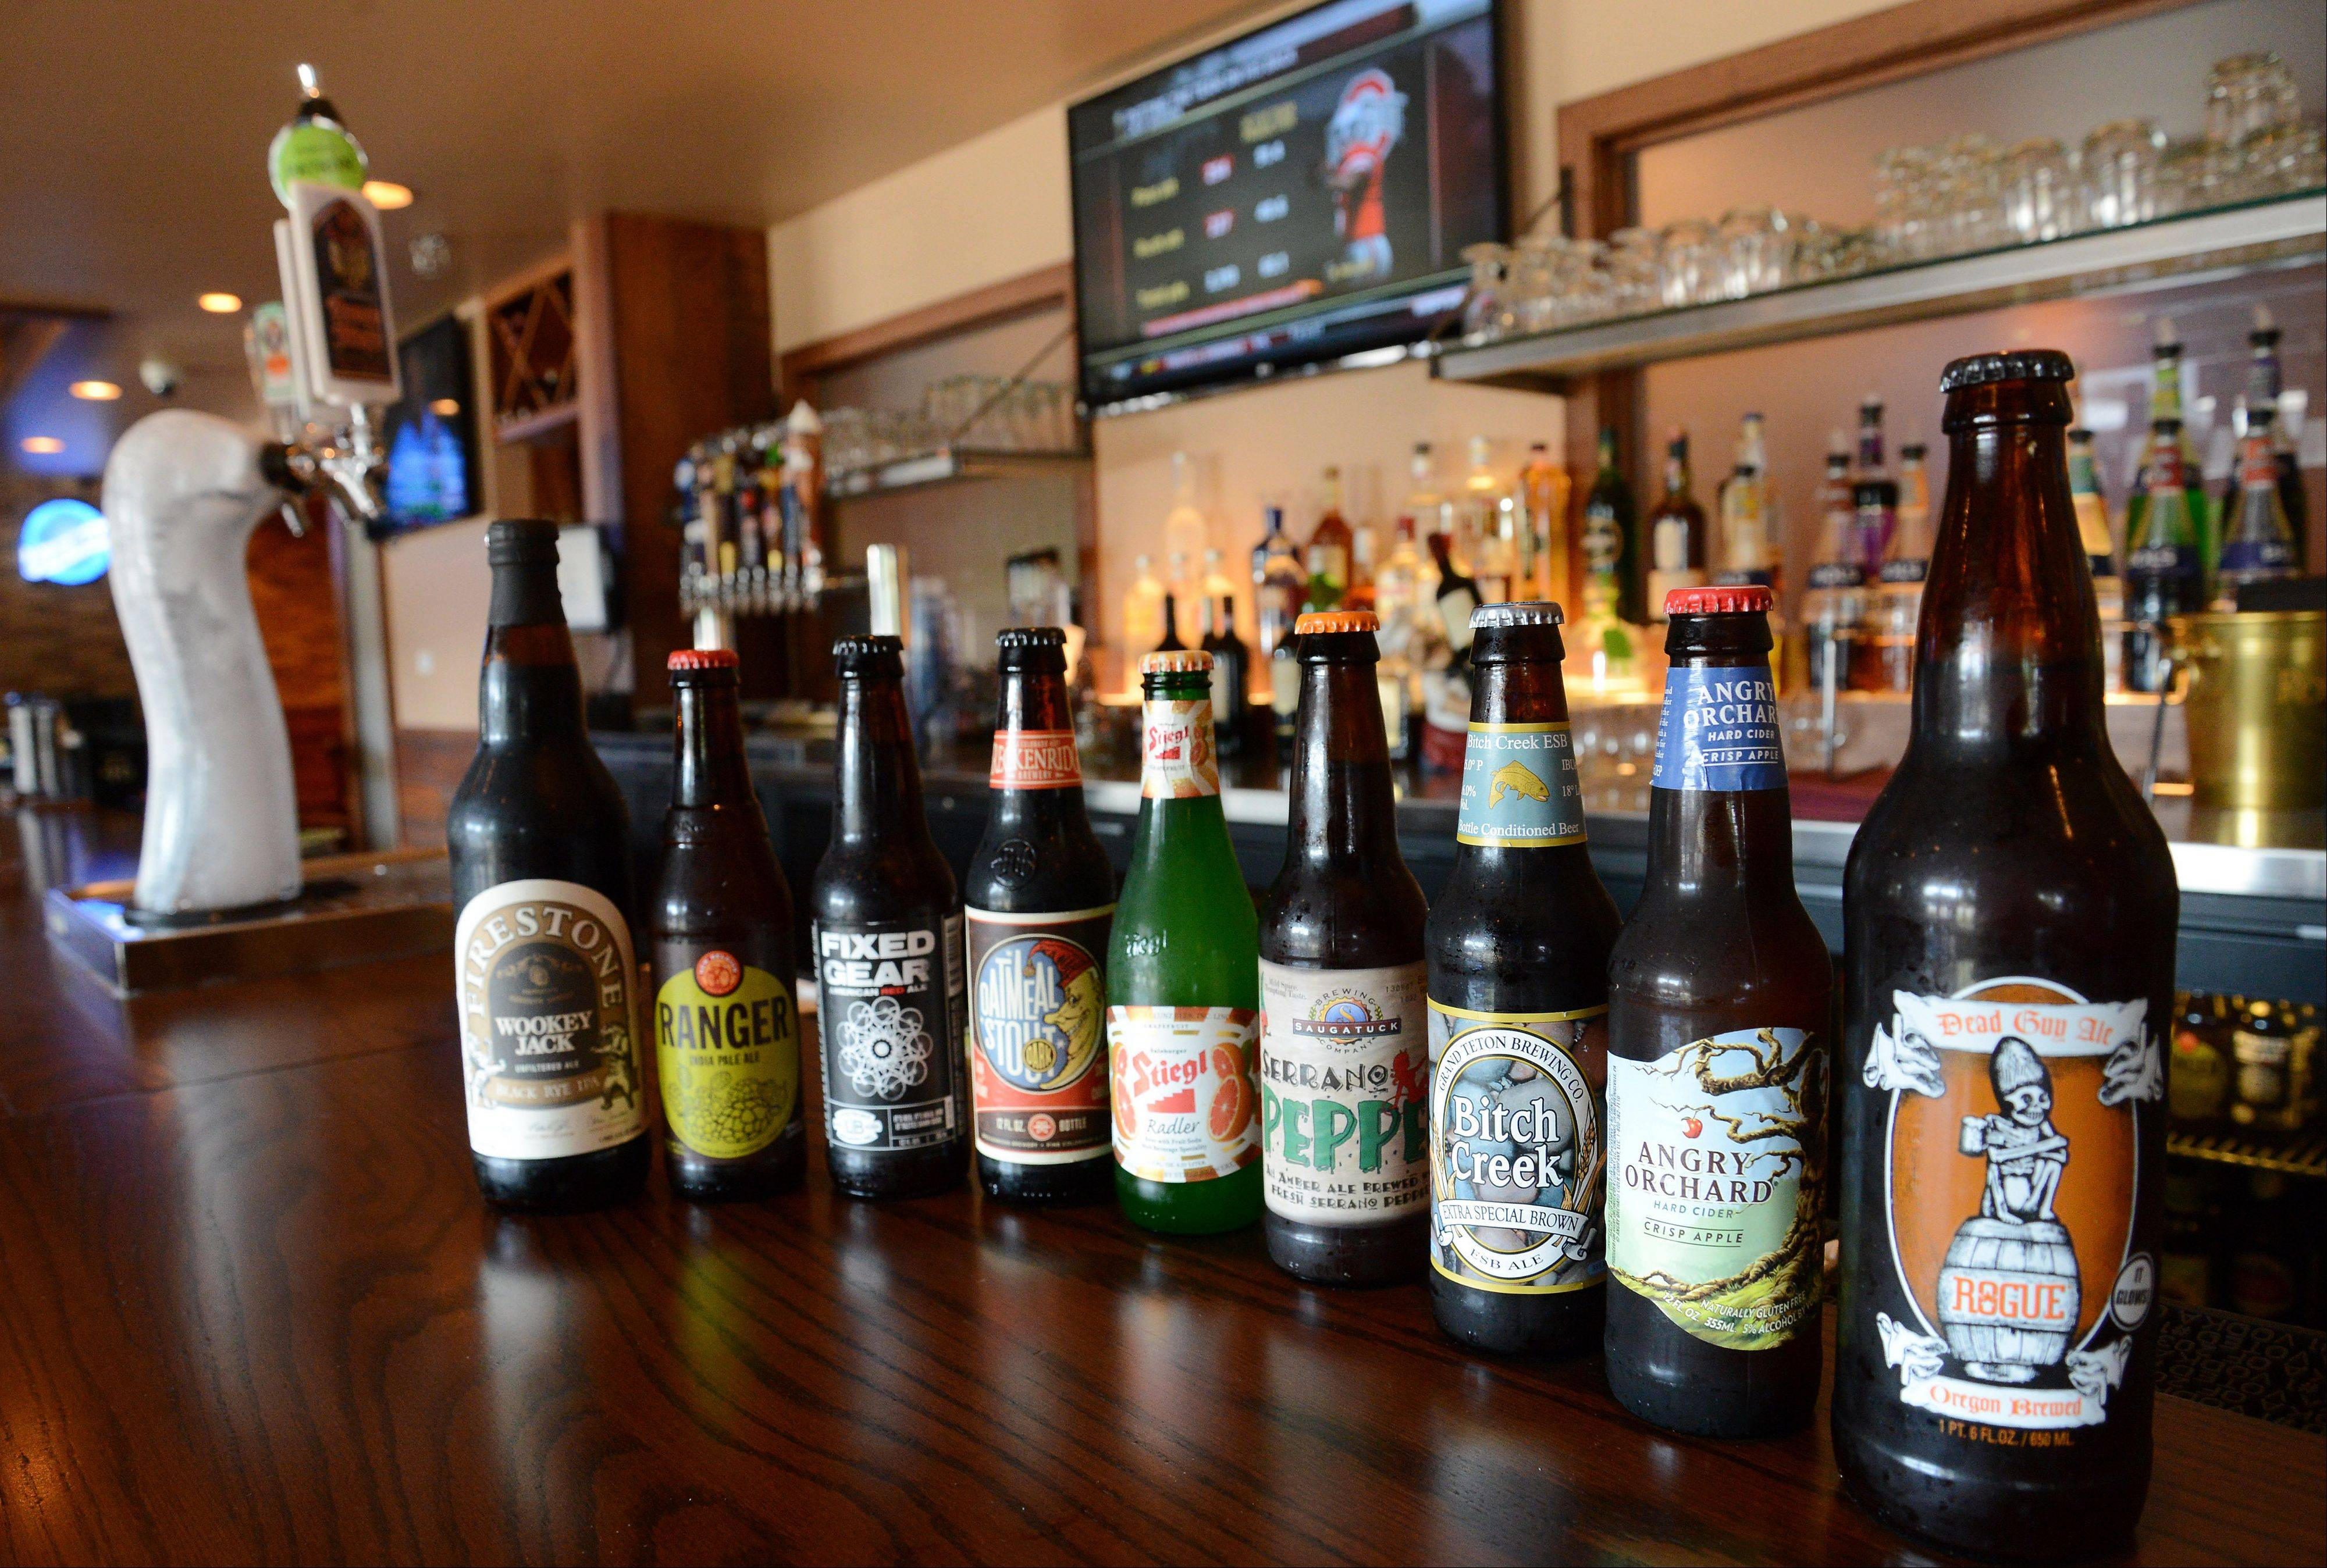 A wide variety of bottled beers are available at D'Agostino's Pizza and Pub in Wheeling.